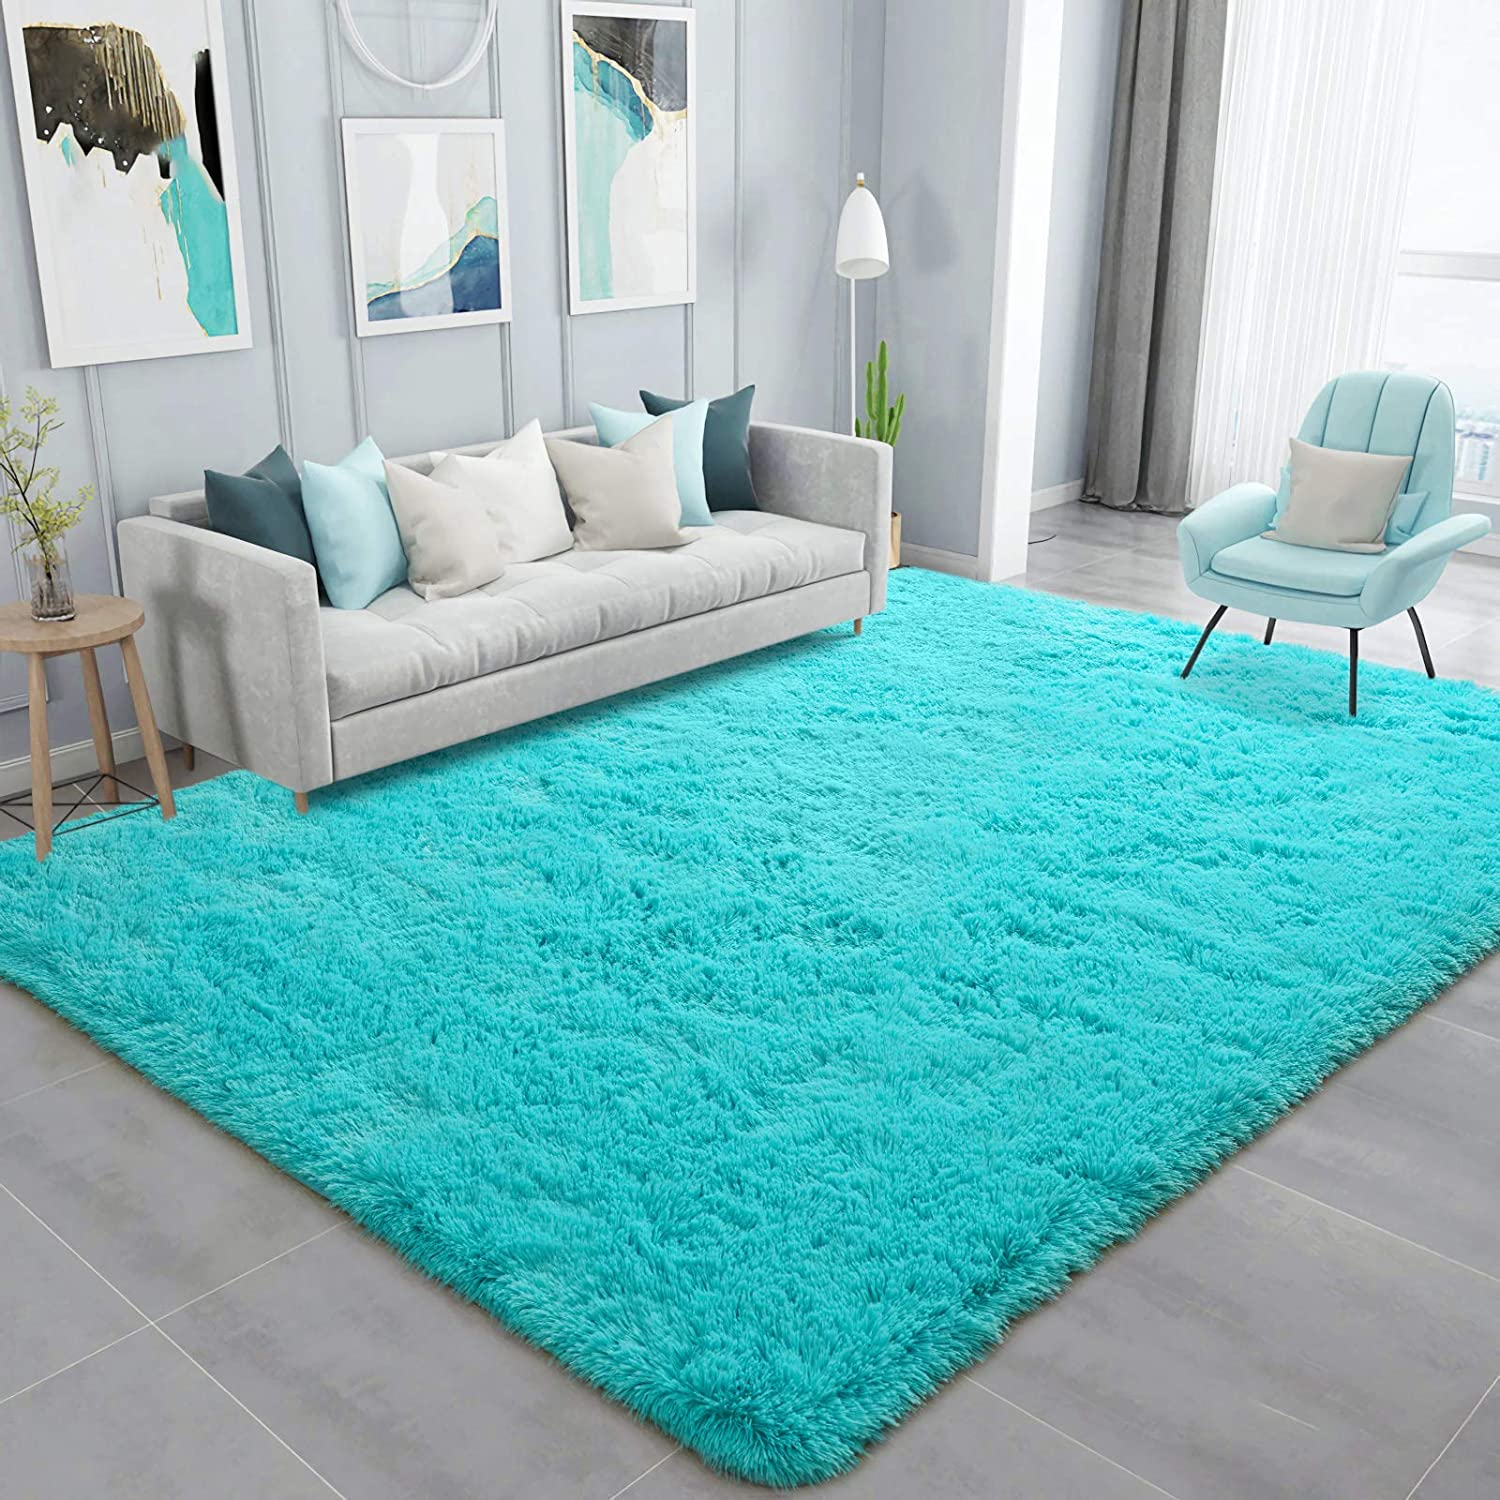 Ompaa Soft Fluffy Area Rug for Living Room Bedroom, 5x8 Teal Blue Plush Shag Rugs, Fuzzy Shaggy Accent Carpets for Kids Girls Rooms, Modern Apartment Nursery Dorm Indoor Furry Decor